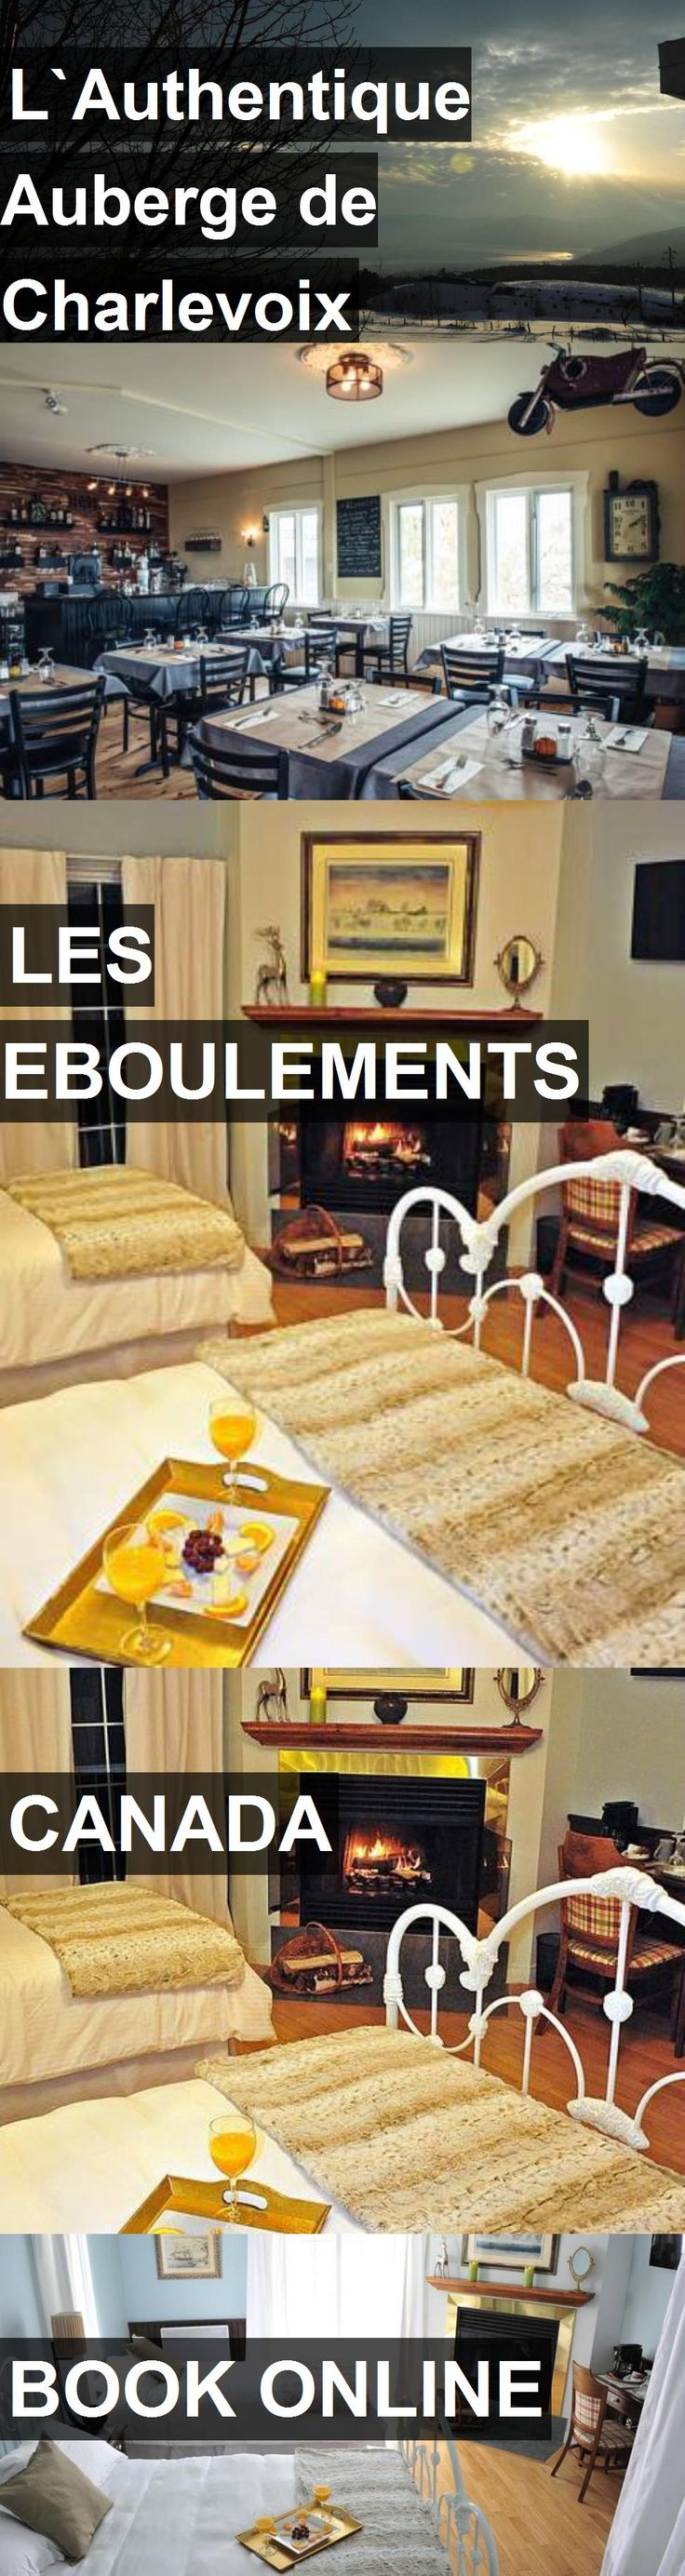 Hotel L`Authentique Auberge de Charlevoix in Les Eboulements, Canada. For more information, photos, reviews and best prices please follow the link. #Canada #LesEboulements #travel #vacation #hotel